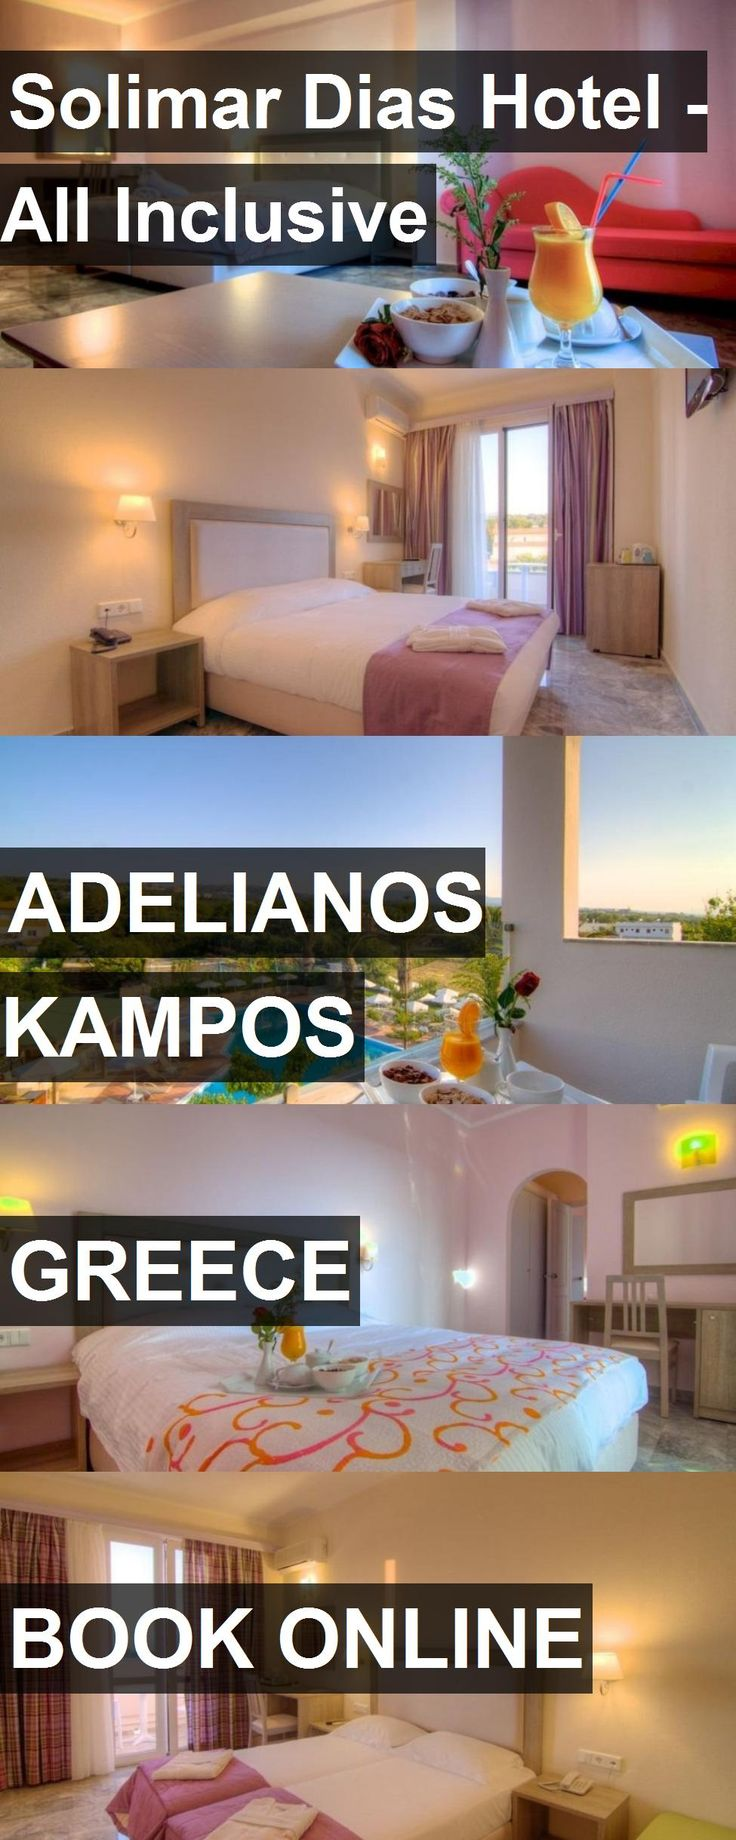 Hotel Solimar Dias Hotel - All Inclusive in Adelianos Kampos, Greece. For more information, photos, reviews and best prices please follow the link. #Greece #AdelianosKampos #SolimarDiasHotel-AllInclusive #hotel #travel #vacation